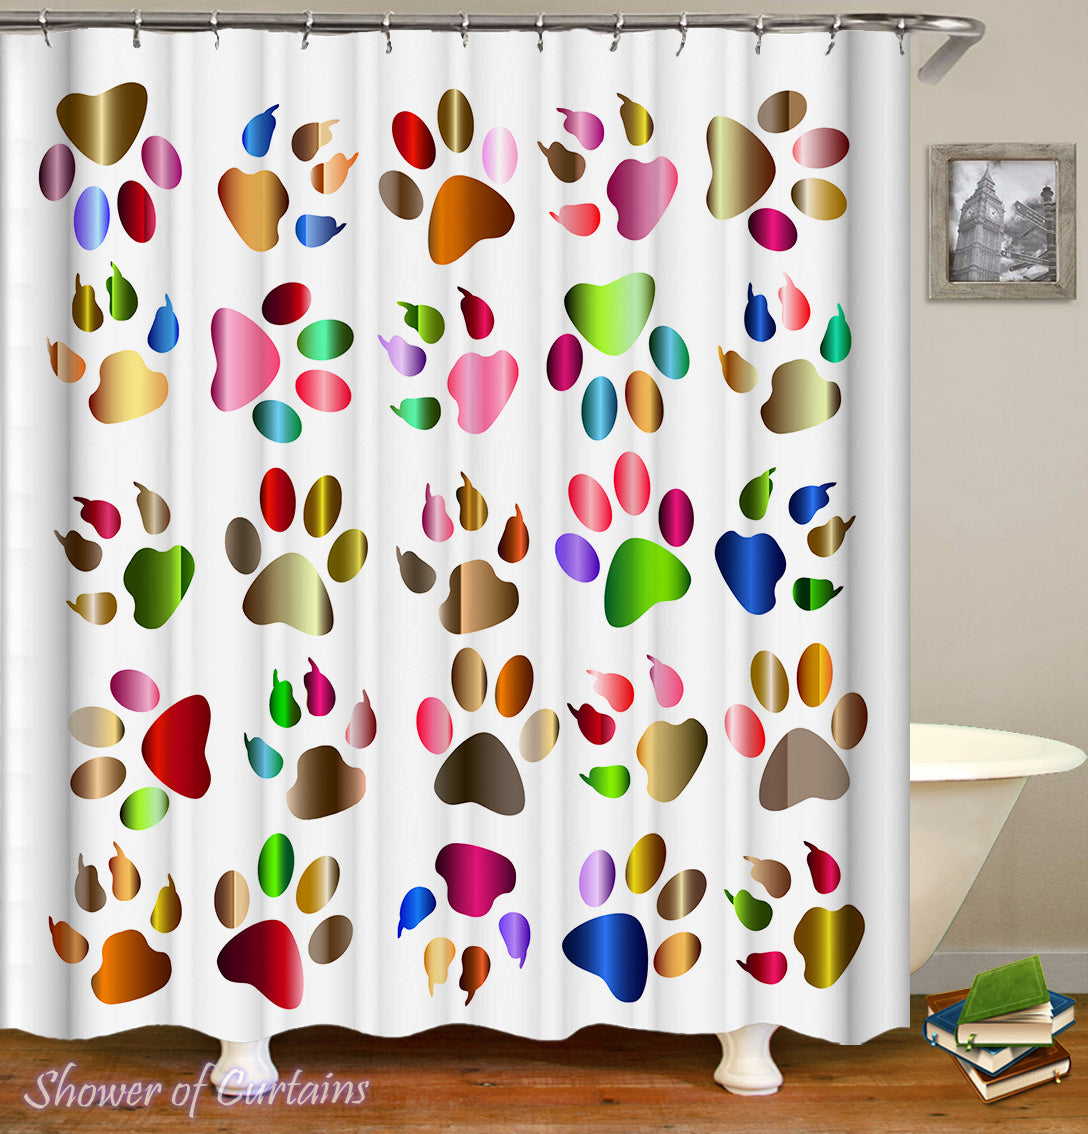 shower curtains multicolored paws and claws shower of curtains